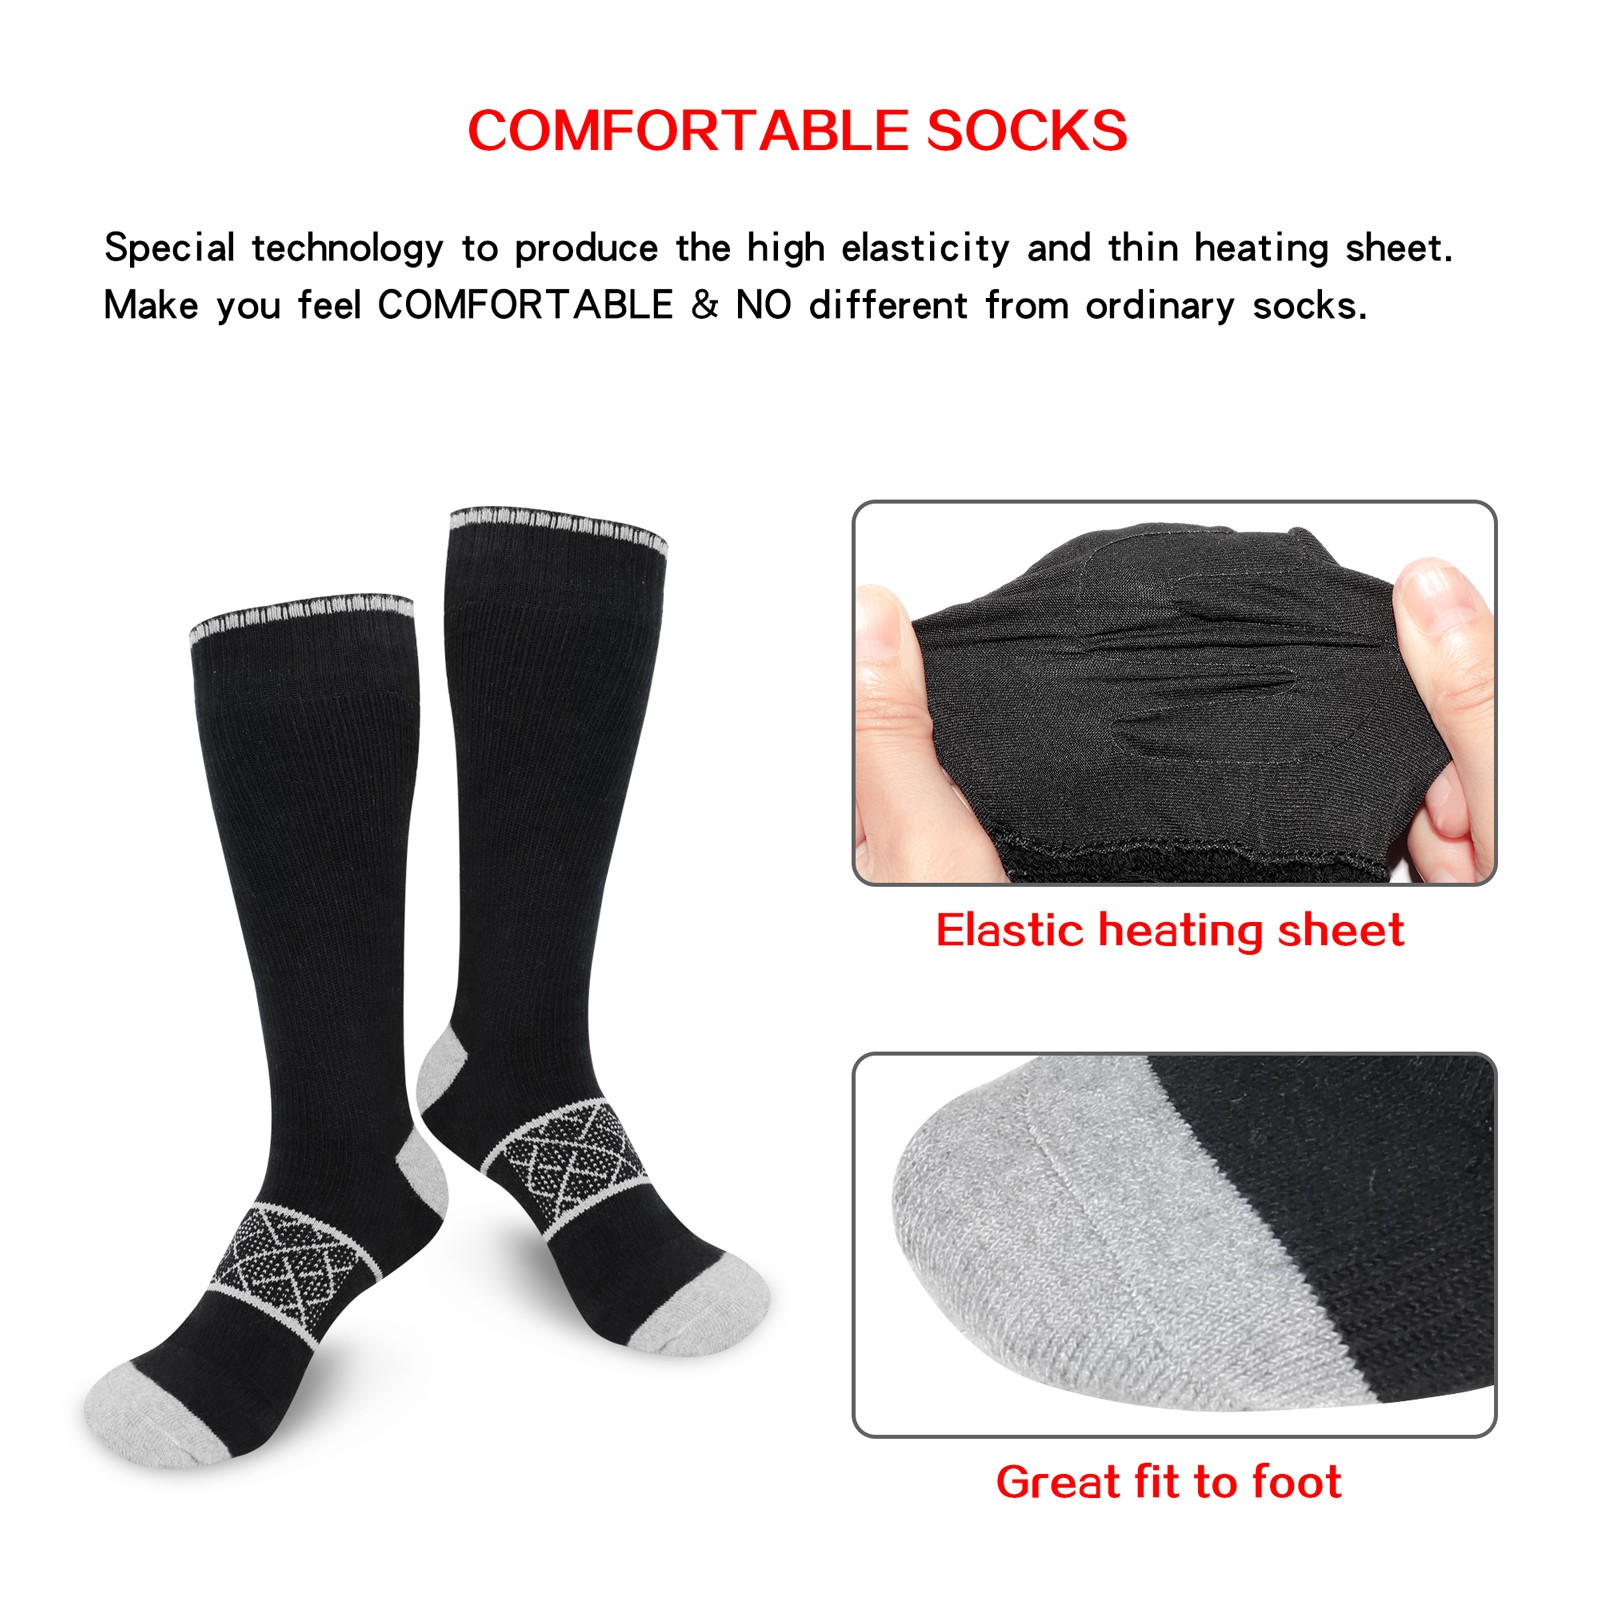 Dr. Warm heated battery heated socks with smart design for indoor use-12